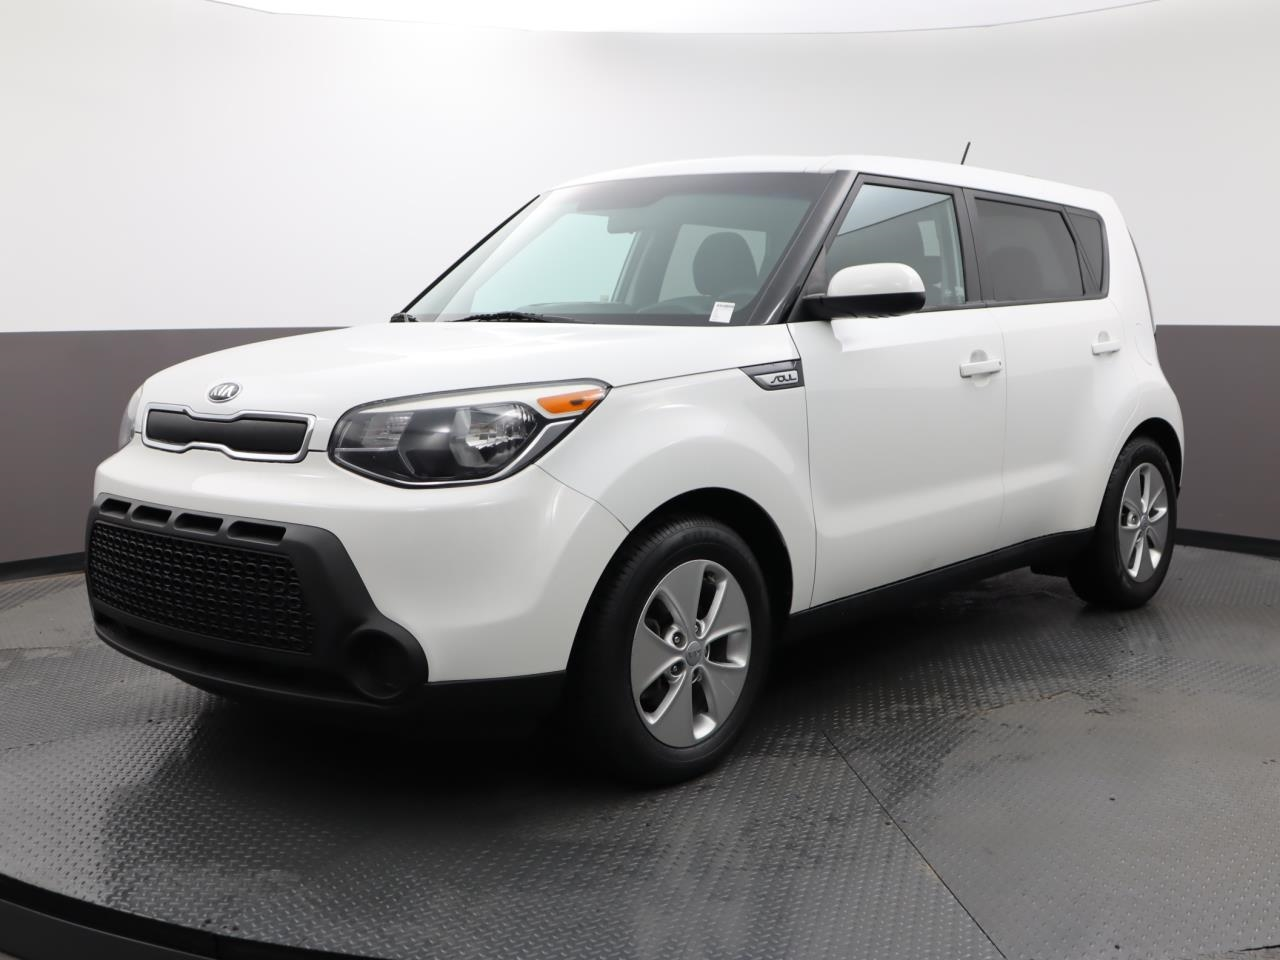 Used KIA SOUL 2016 MARGATE BASE